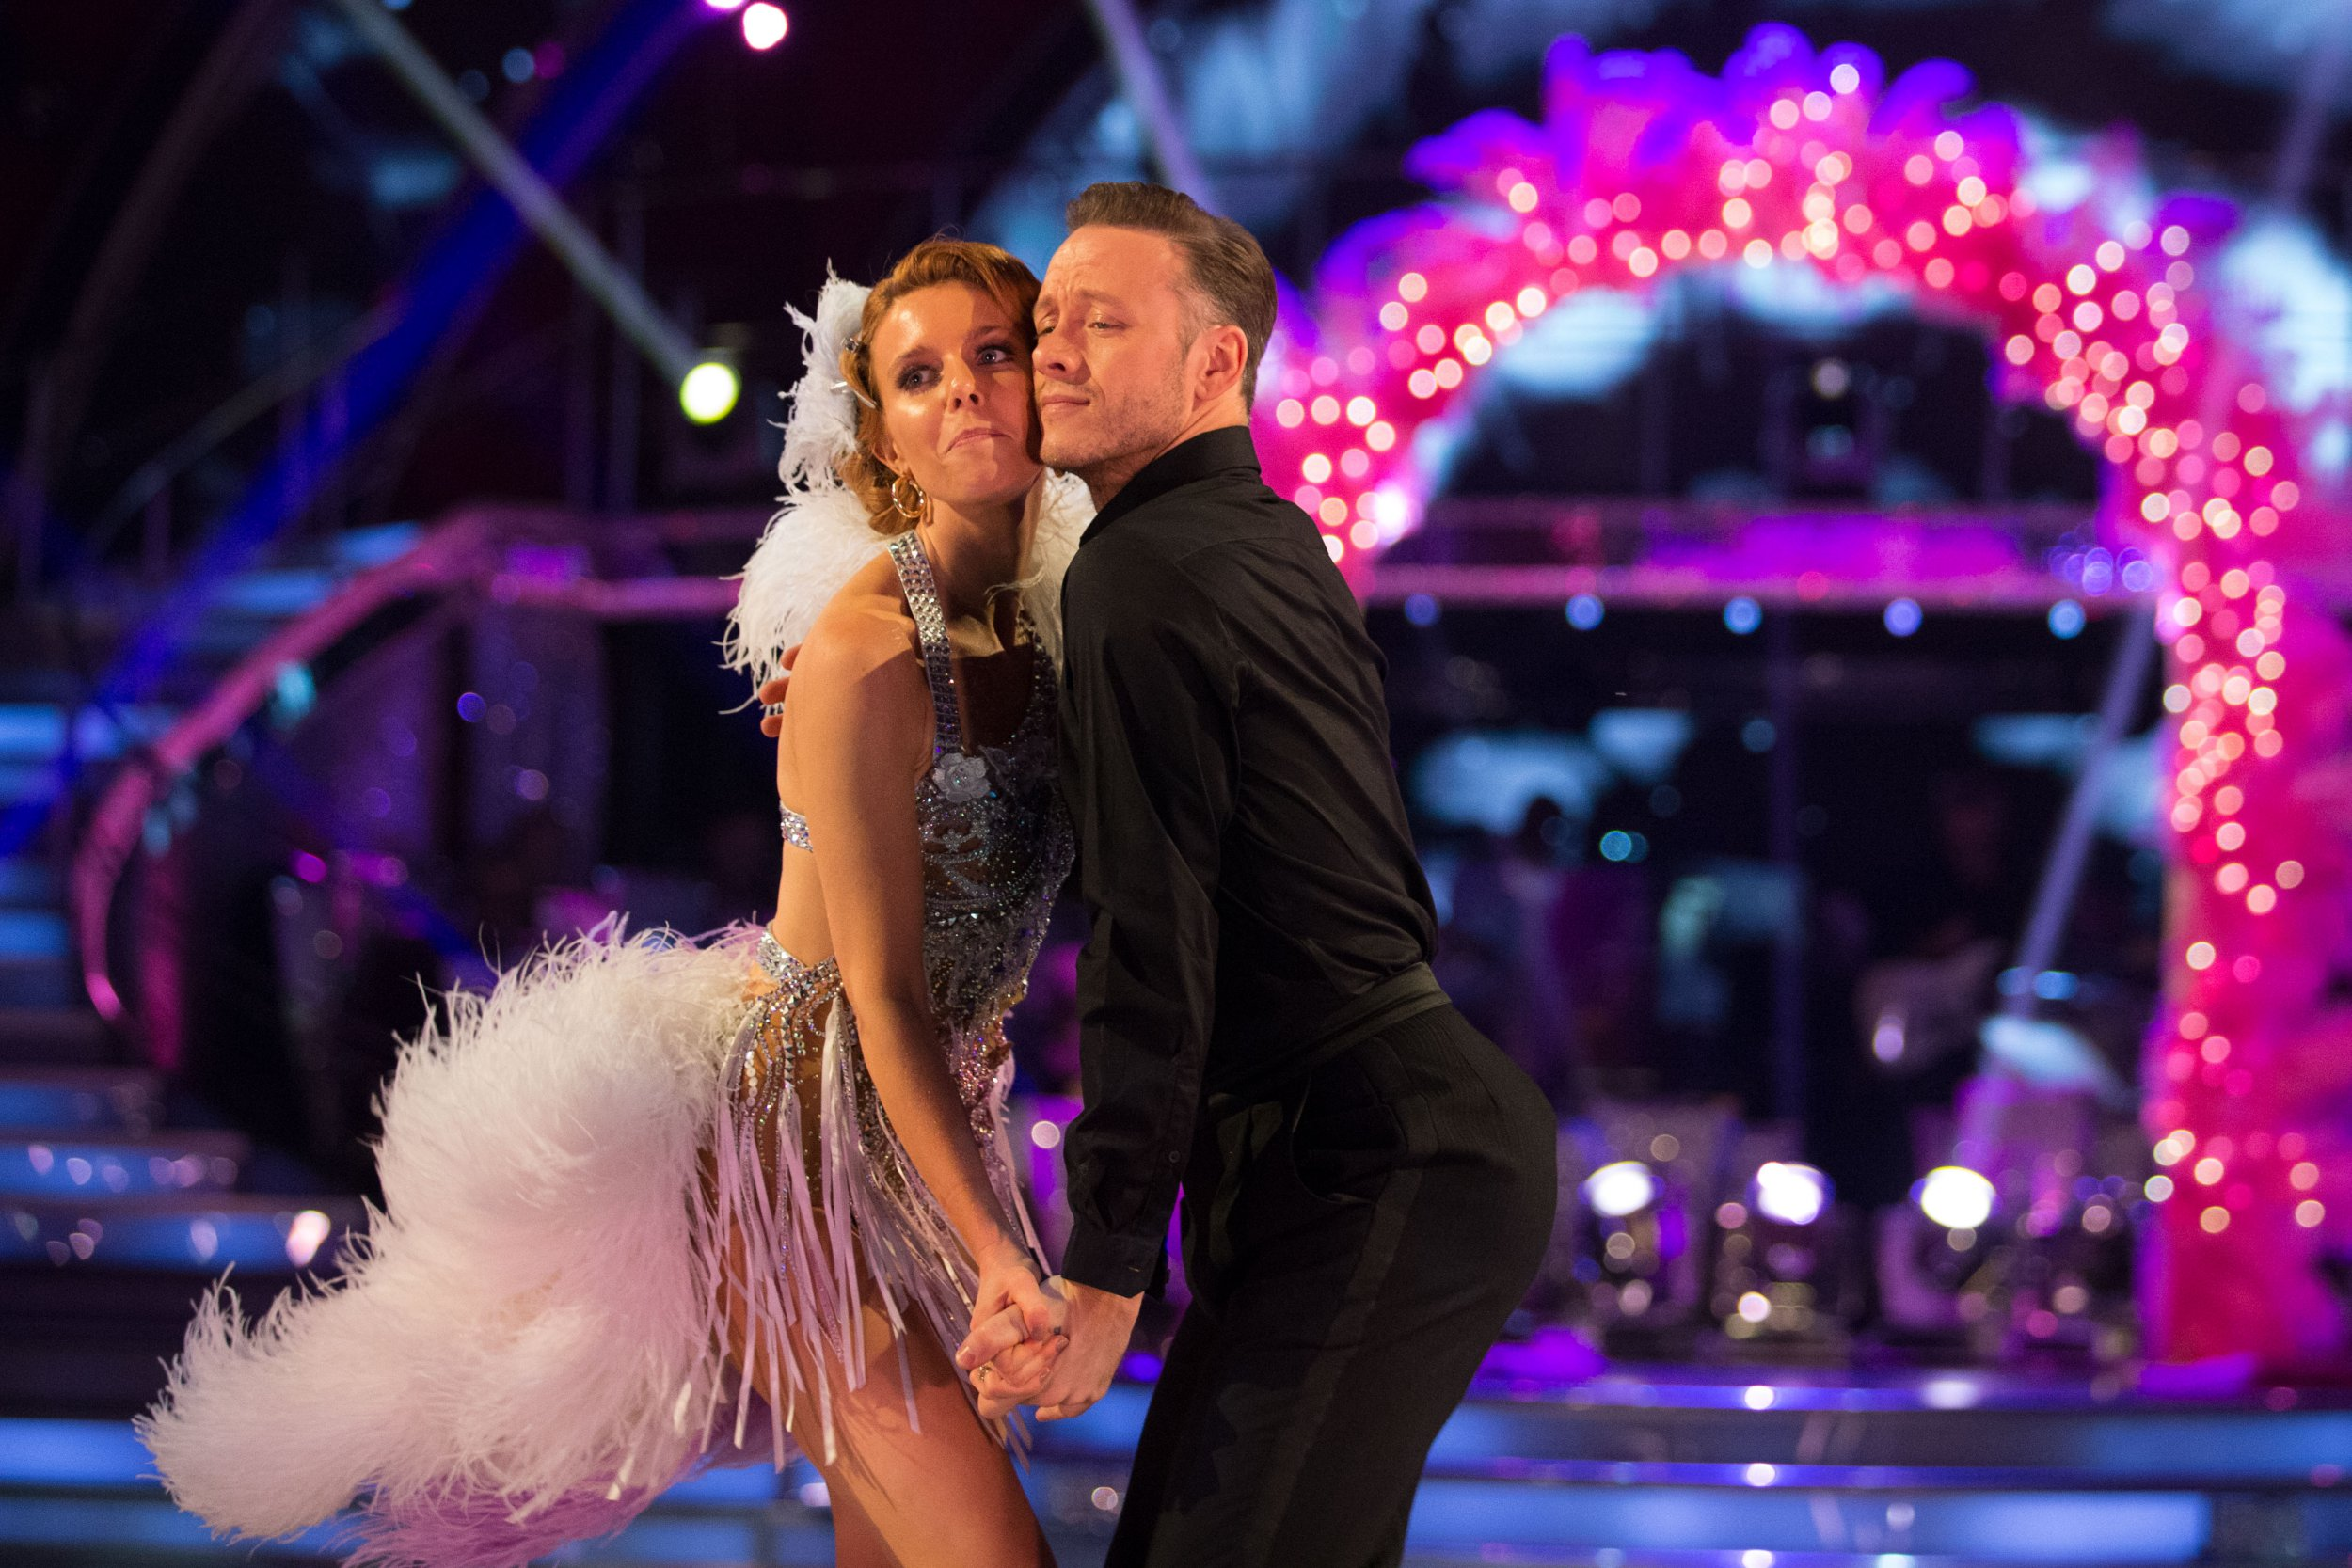 Programme Name: Strictly Come Dancing 2018 - TX: 20/10/2018 - Episode: n/a (No. n/a) - Picture Shows: ***EMBARGOED UNTIL POST TX OF EPISODE 5 20:35hrs 20th Oct 2018*** Stacey Dooley, Kevin Clifton - (C) BBC - Photographer: Guy Levy